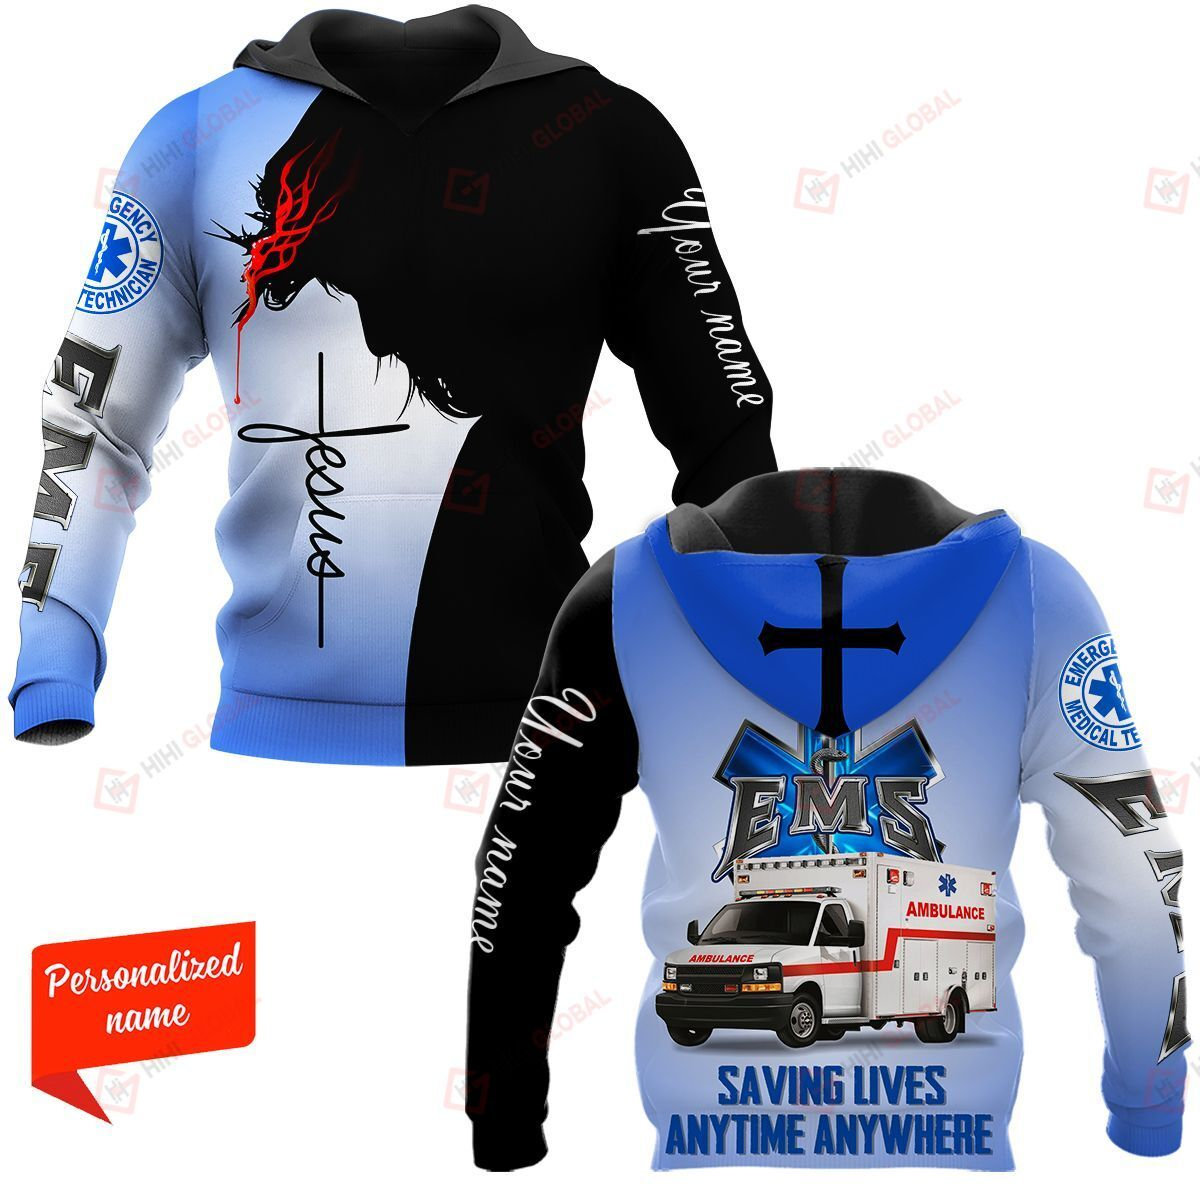 Saving Lives Anytime Anywhere EMS Paramedic Personalized ALL OVER PRINTED SHIRTS